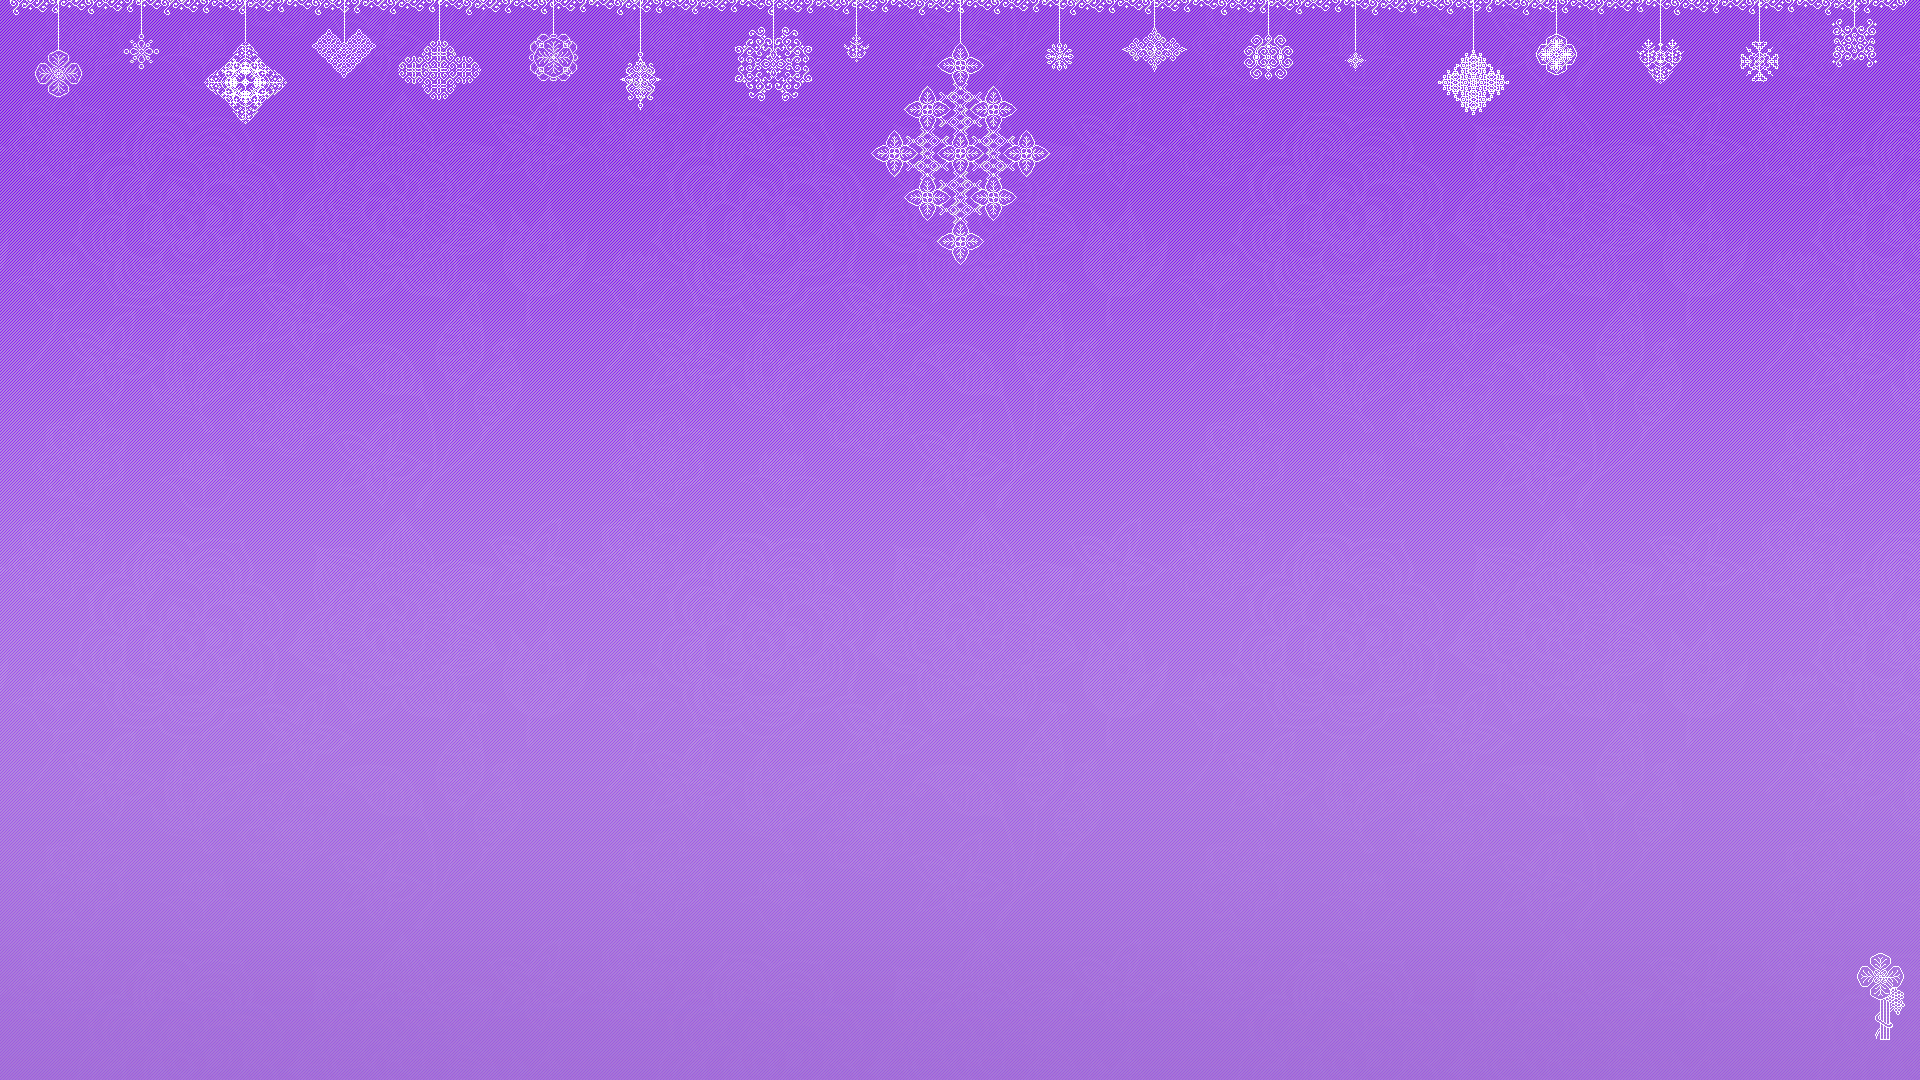 Free Download Cute Pixel Art Tumblr Purple Wallpaper Full 1920x1080 For Your Desktop Mobile Tablet Explore 70 Background Wallpapers Pink And